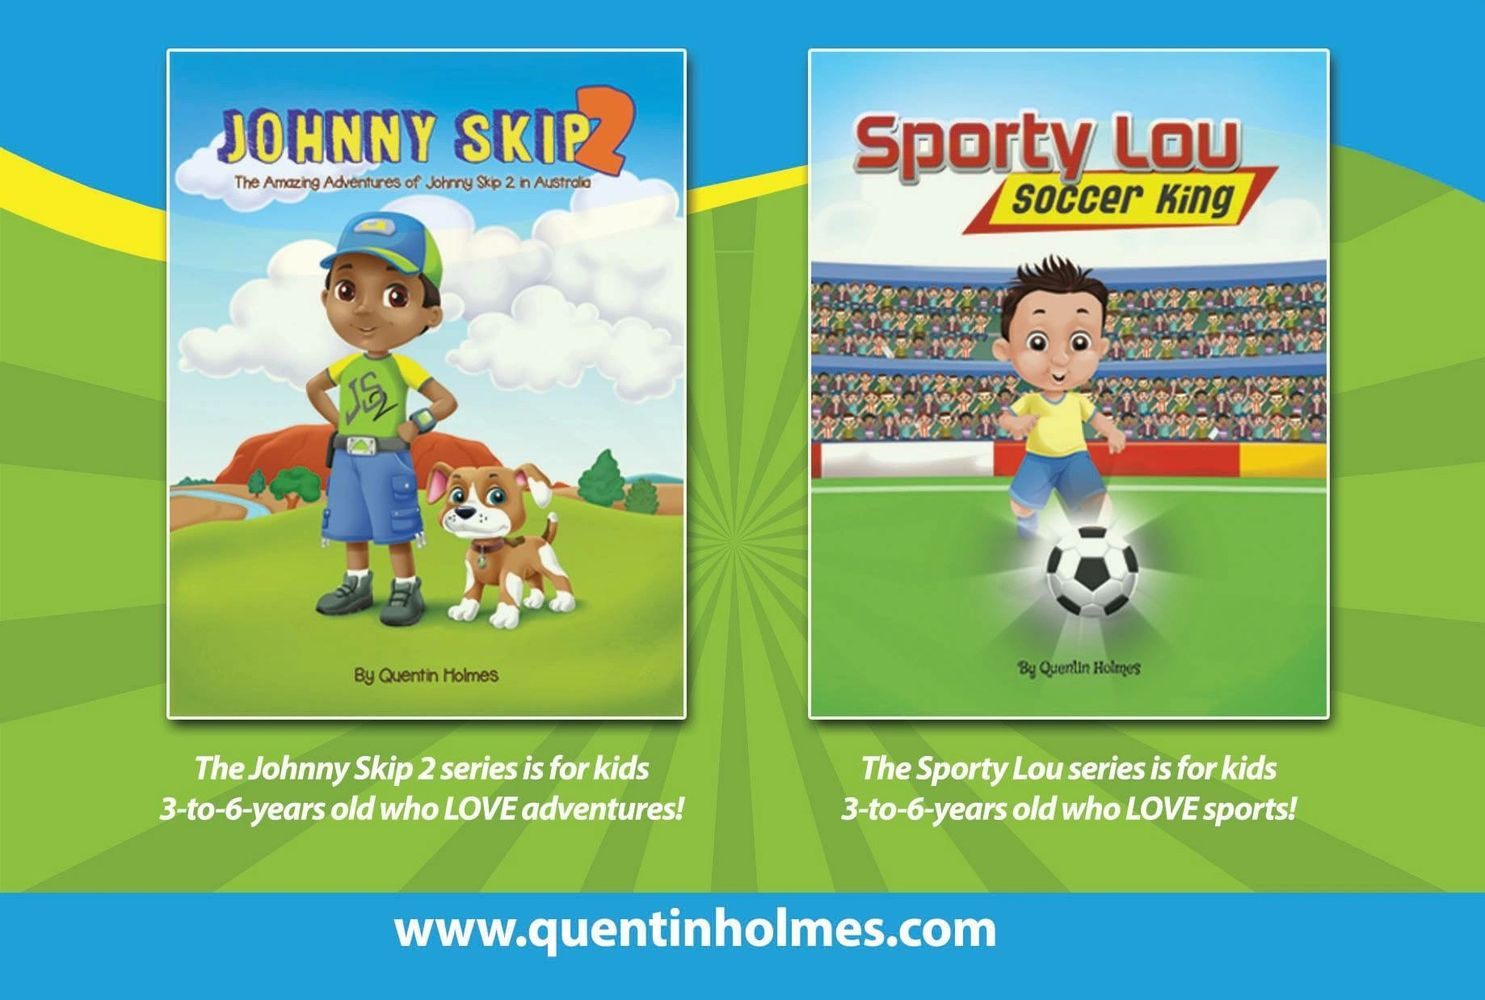 Multicultural Children's Books by Quentin Holmes